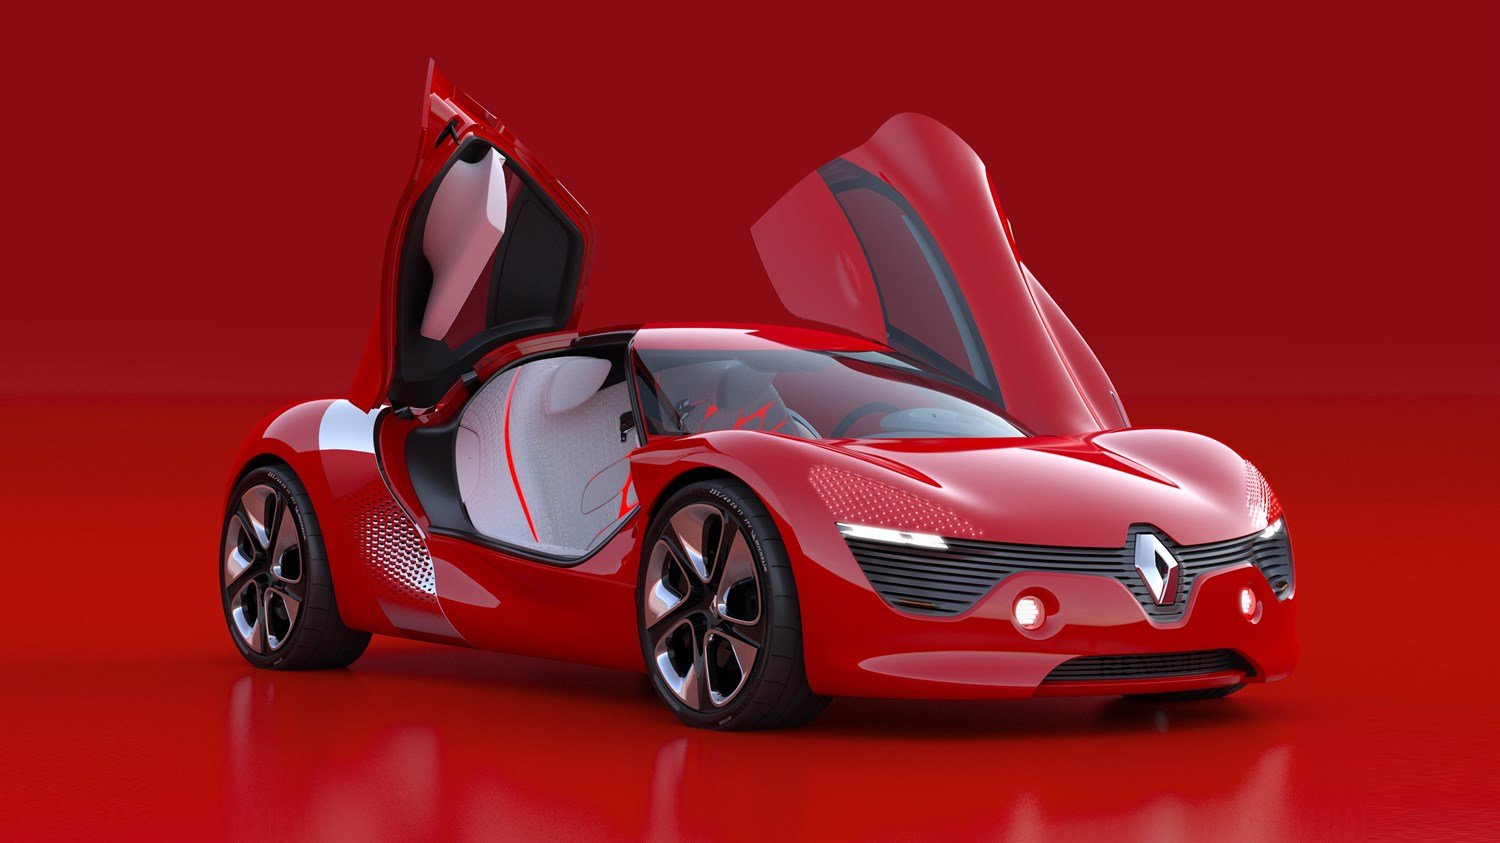 Renault DEZIR Concept - 3/4 front view on red background with side doors open